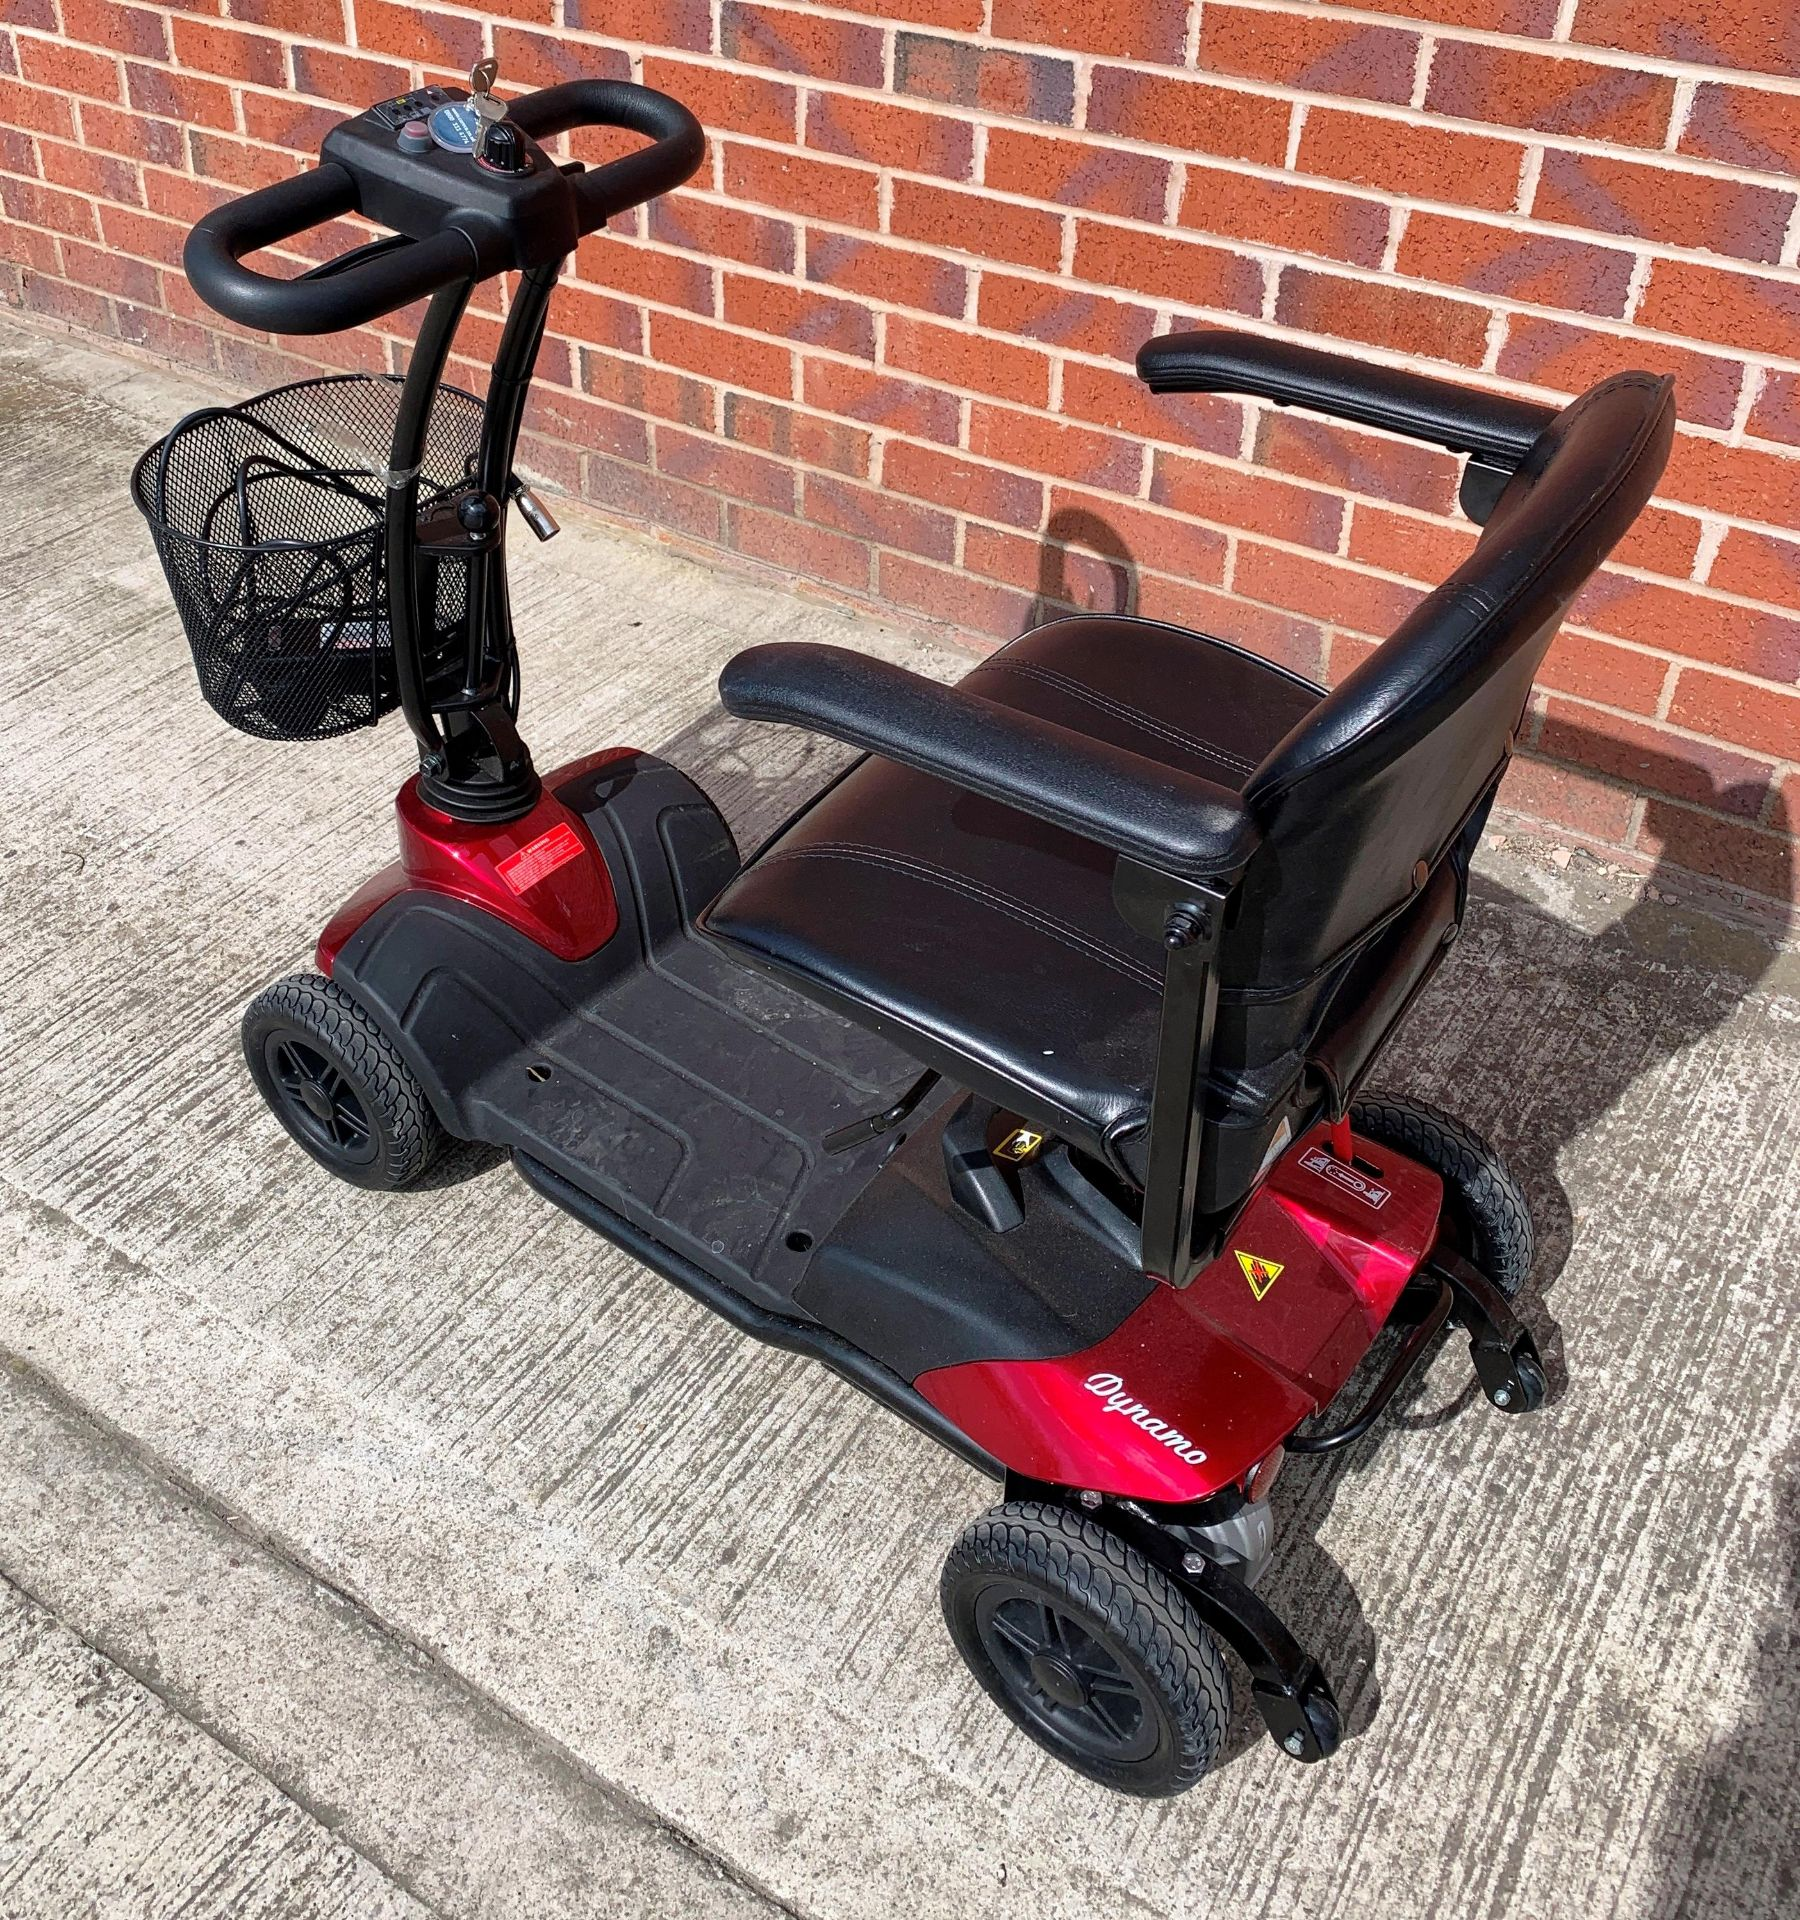 A CTM Dynamo 4 wheel mobility scooter - max weight 115 kg, S/N 18AHC6315 - date of manufacture 02. - Image 3 of 6